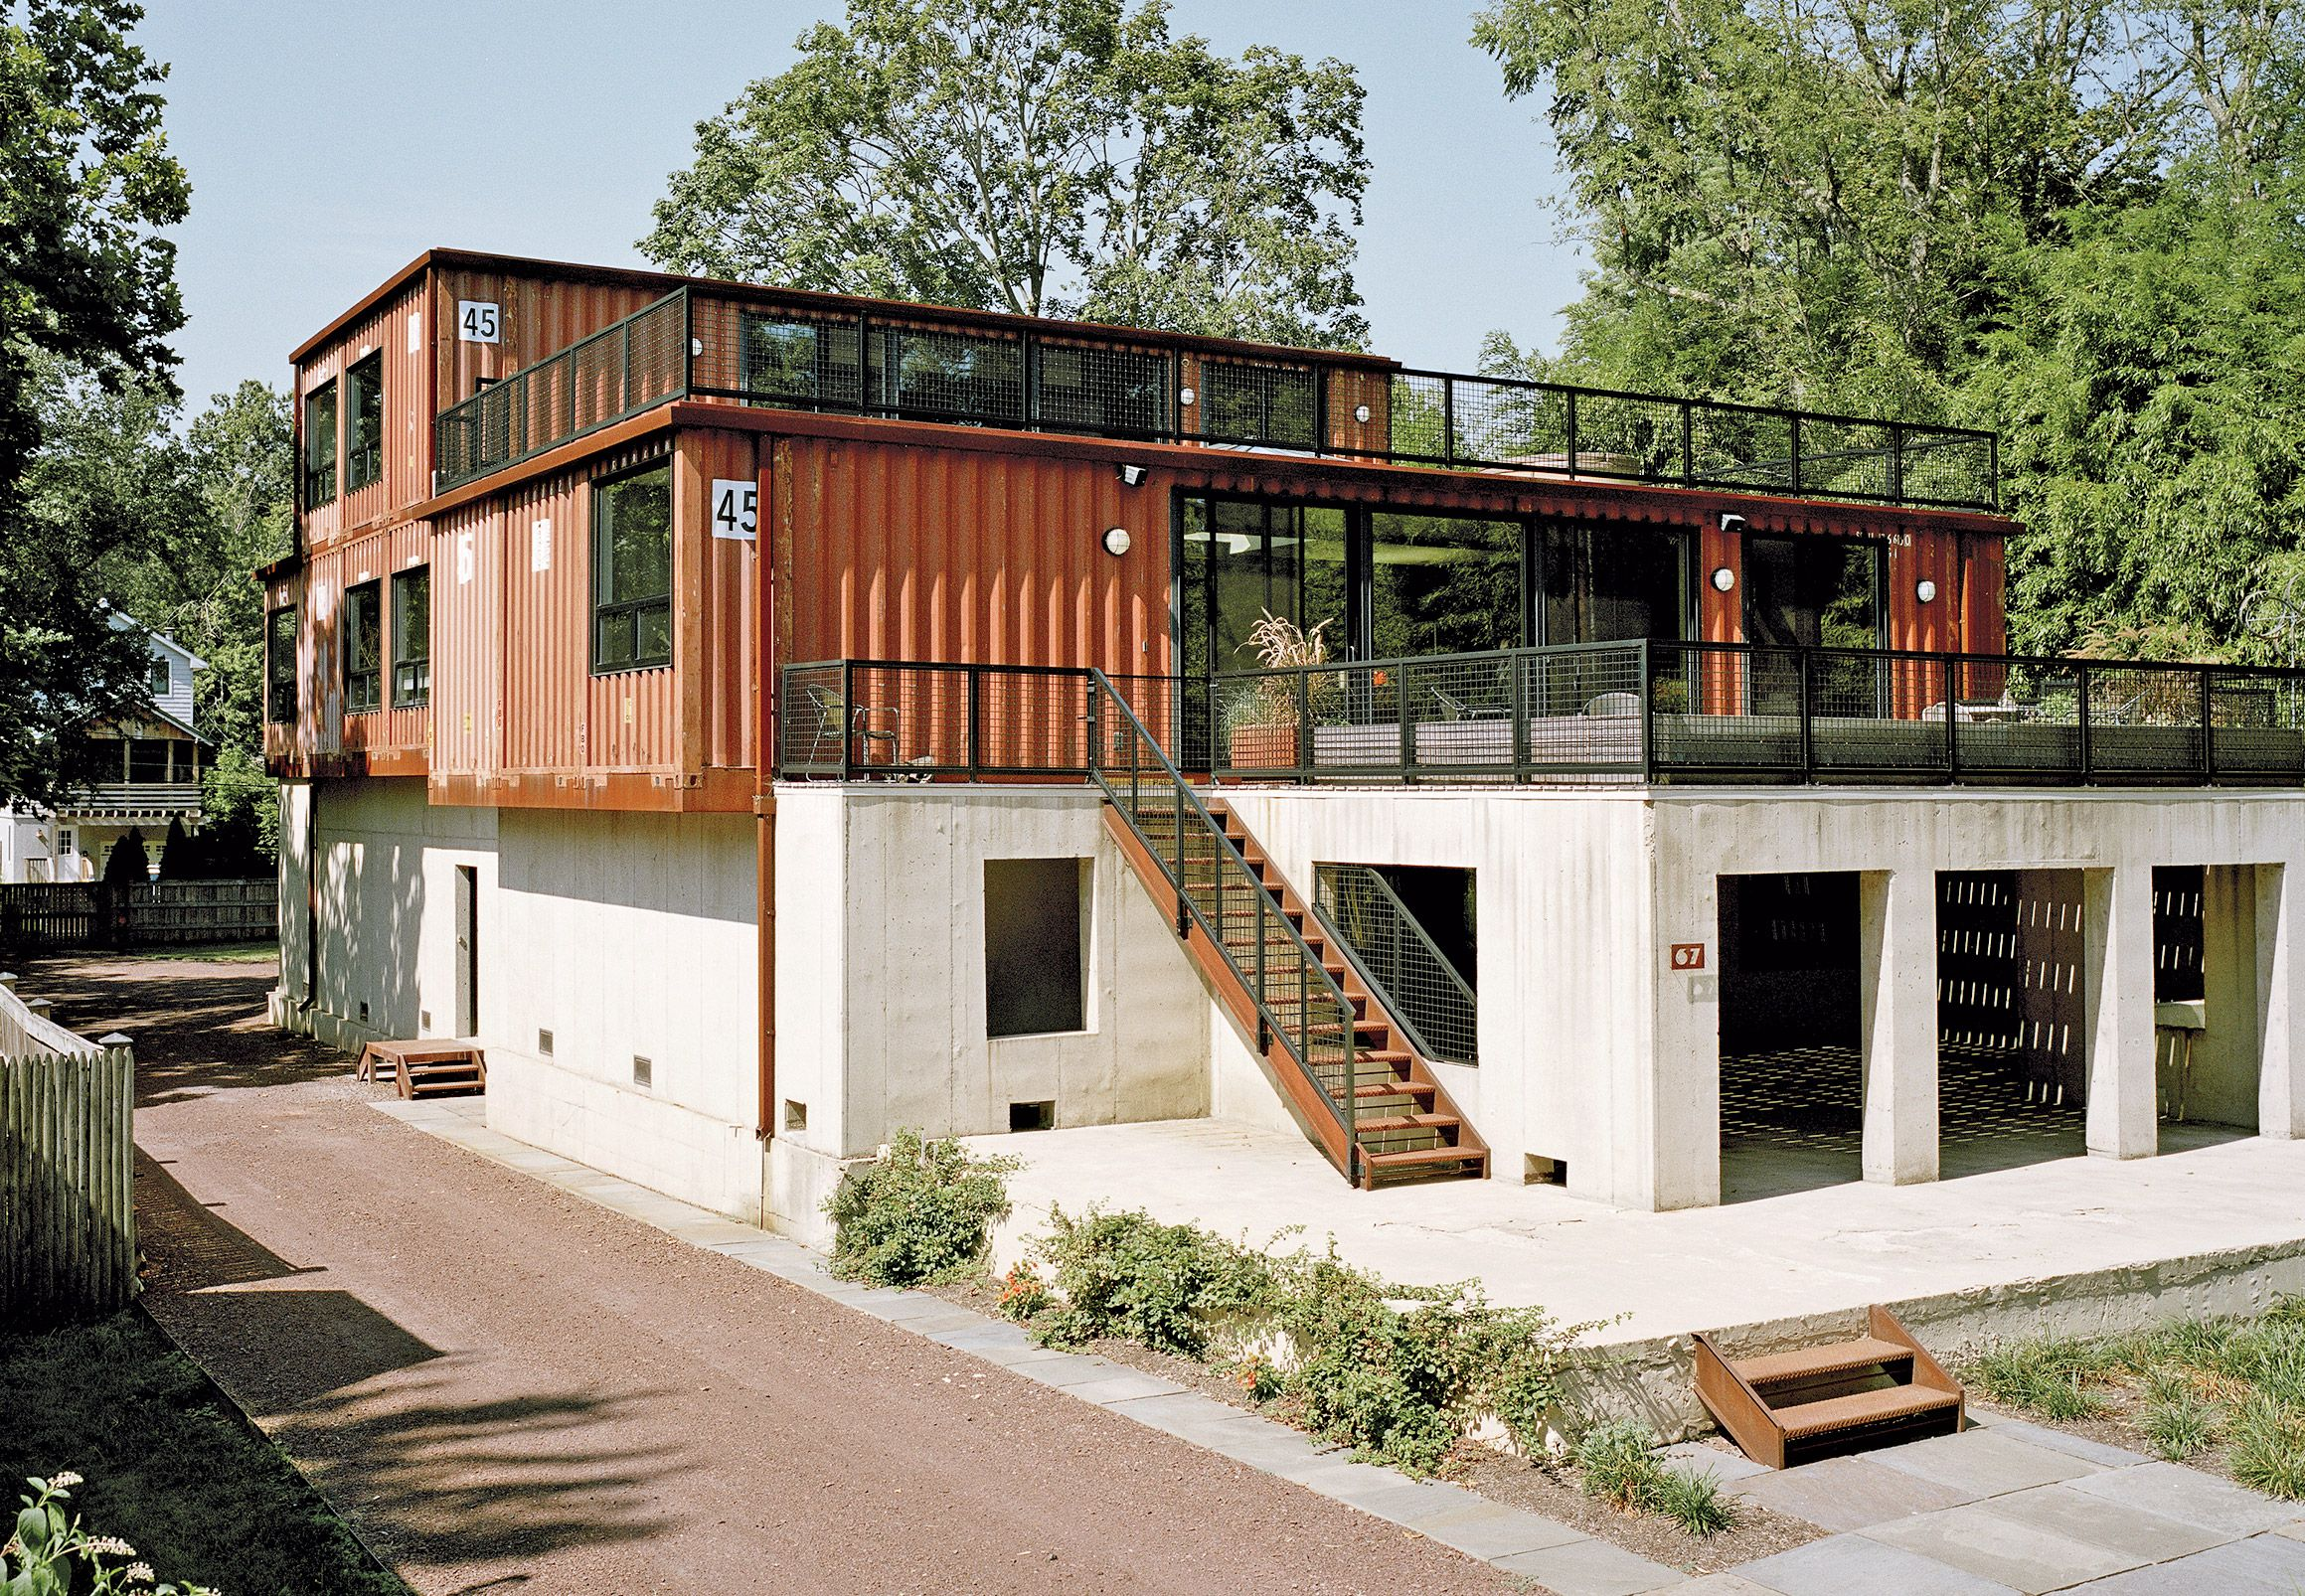 A Shipping Container Home In Pennsylvania Embraces Its Rugged Industrial Origins Container Hauspläne Container Home Designs Frachtcontainer Häuser